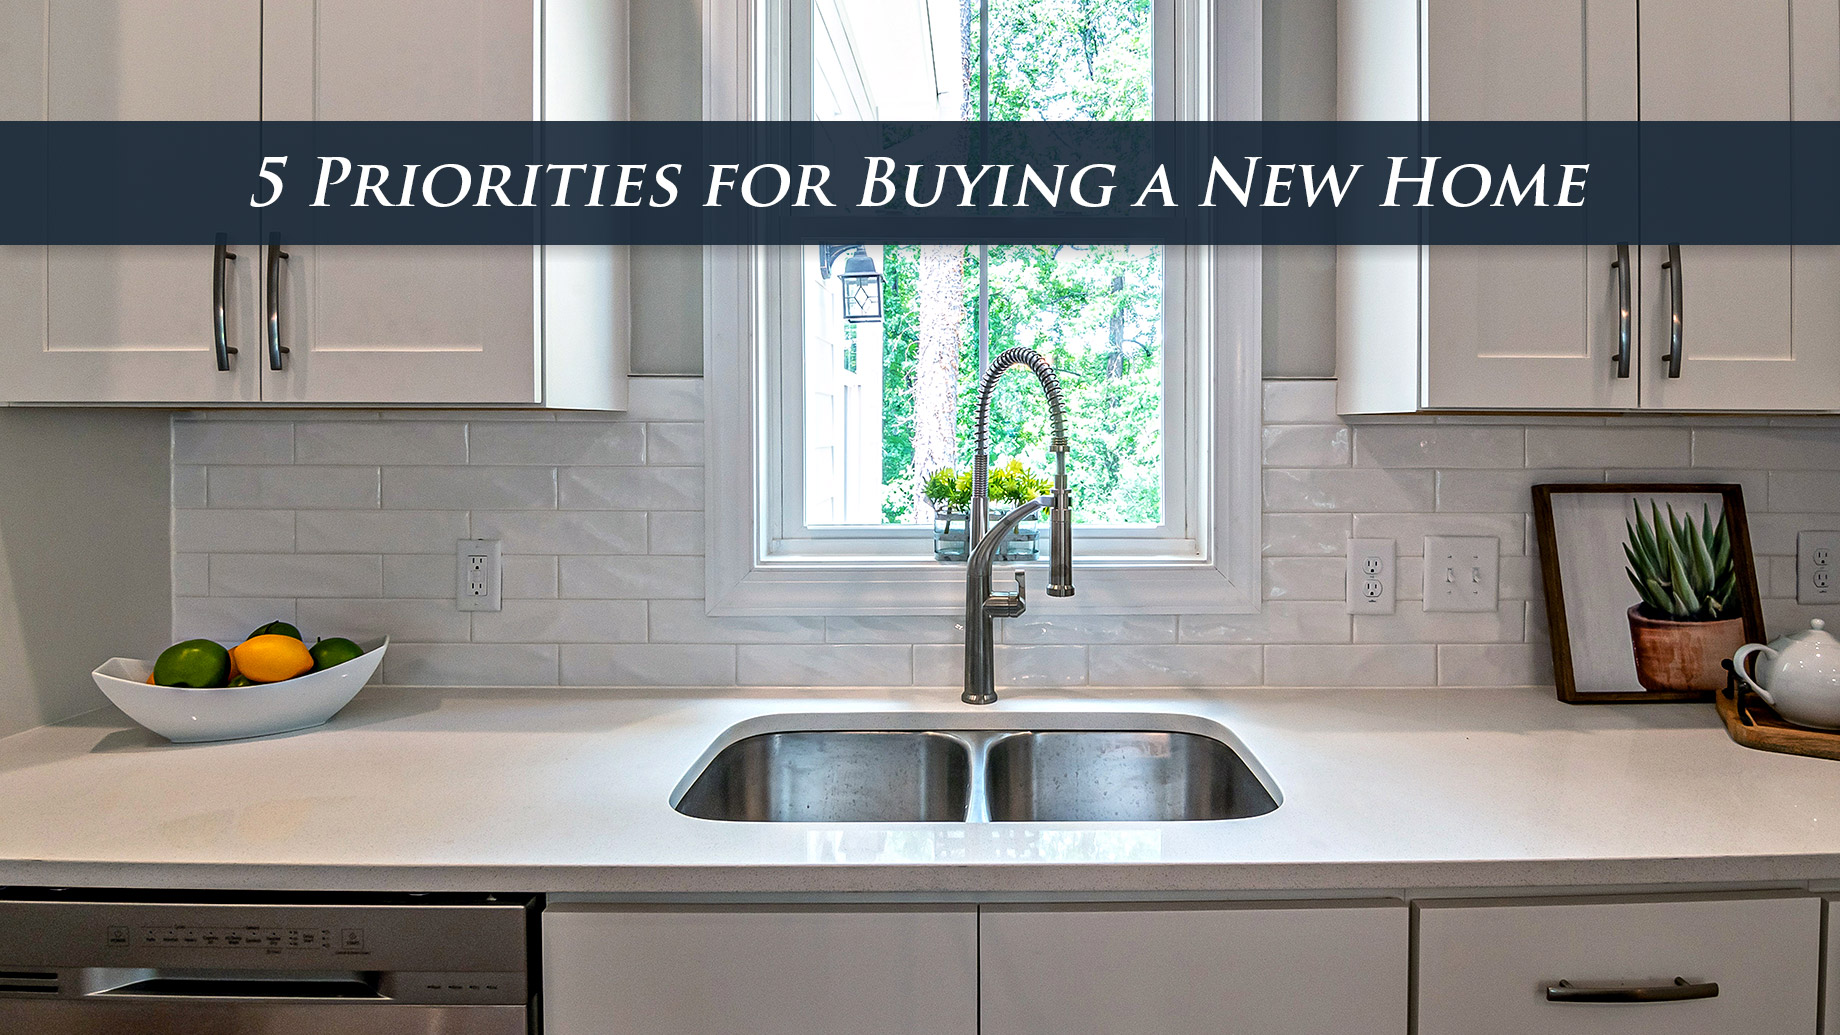 5 Priorities for Buying a New Home